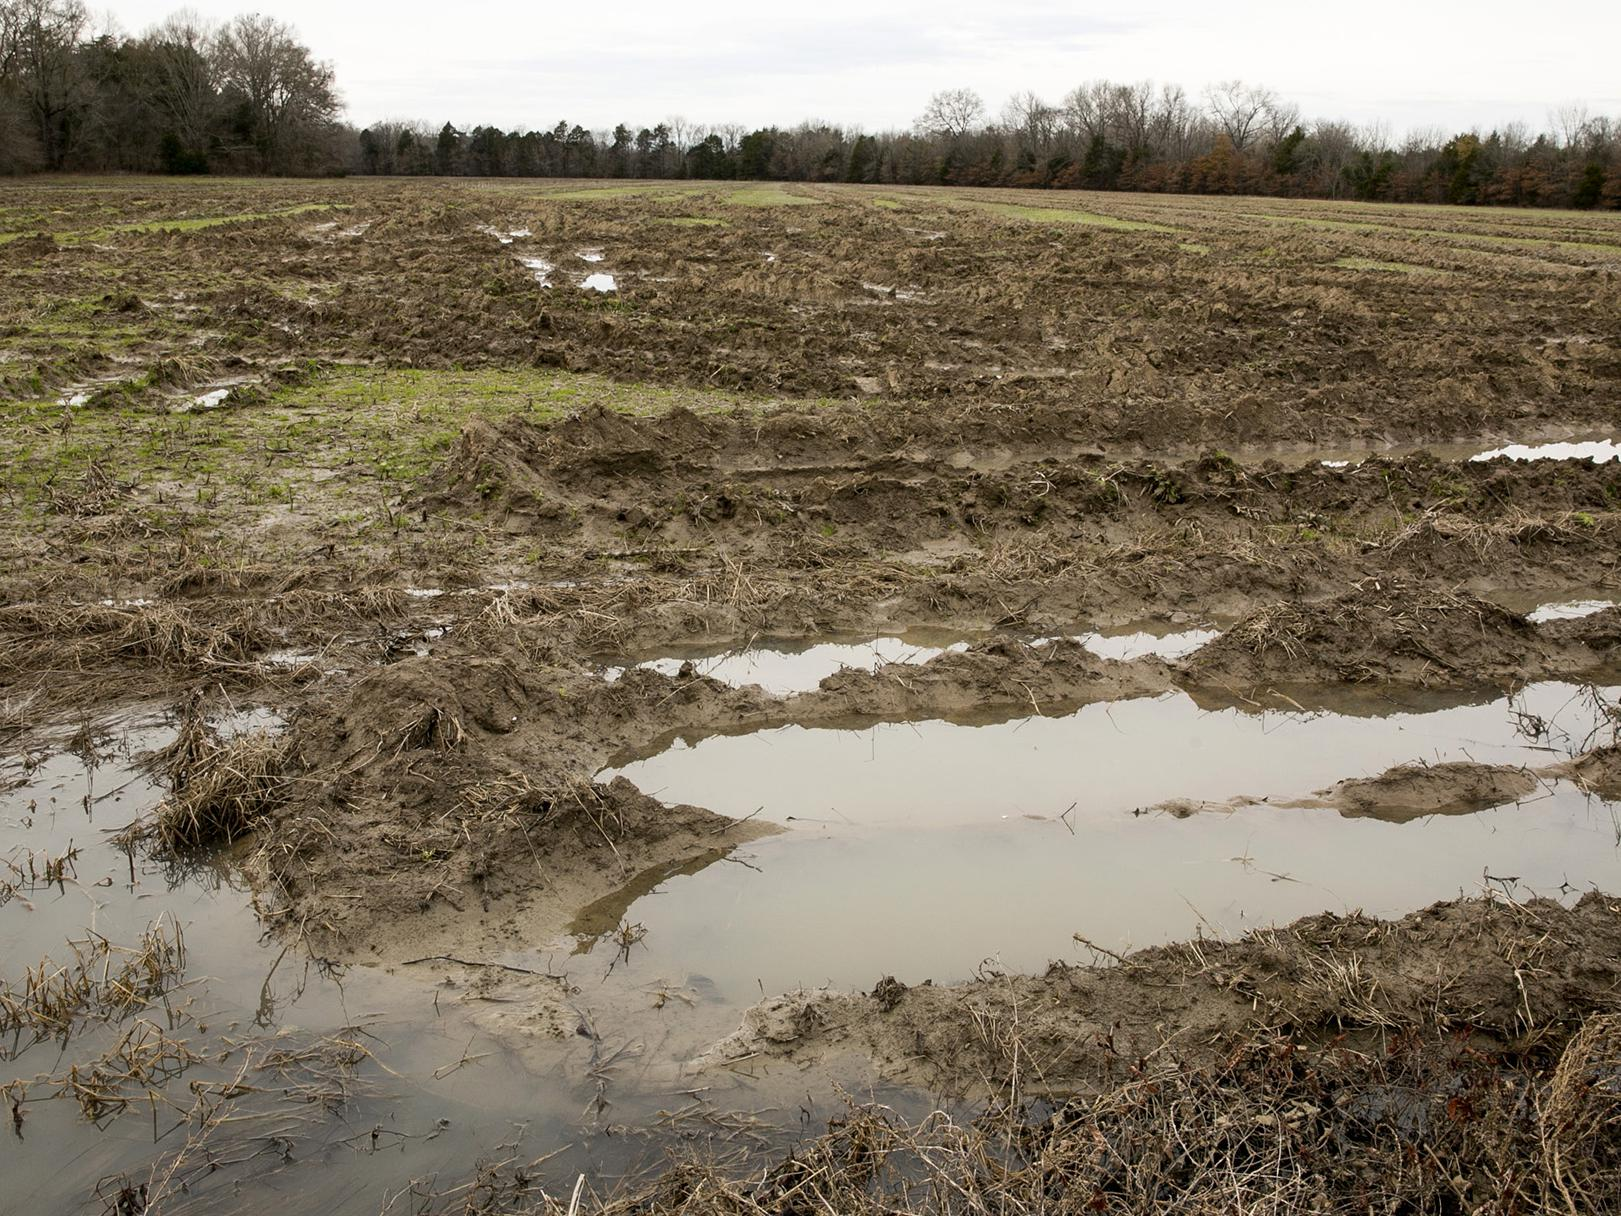 Harvested field with large tire ruts holding water.